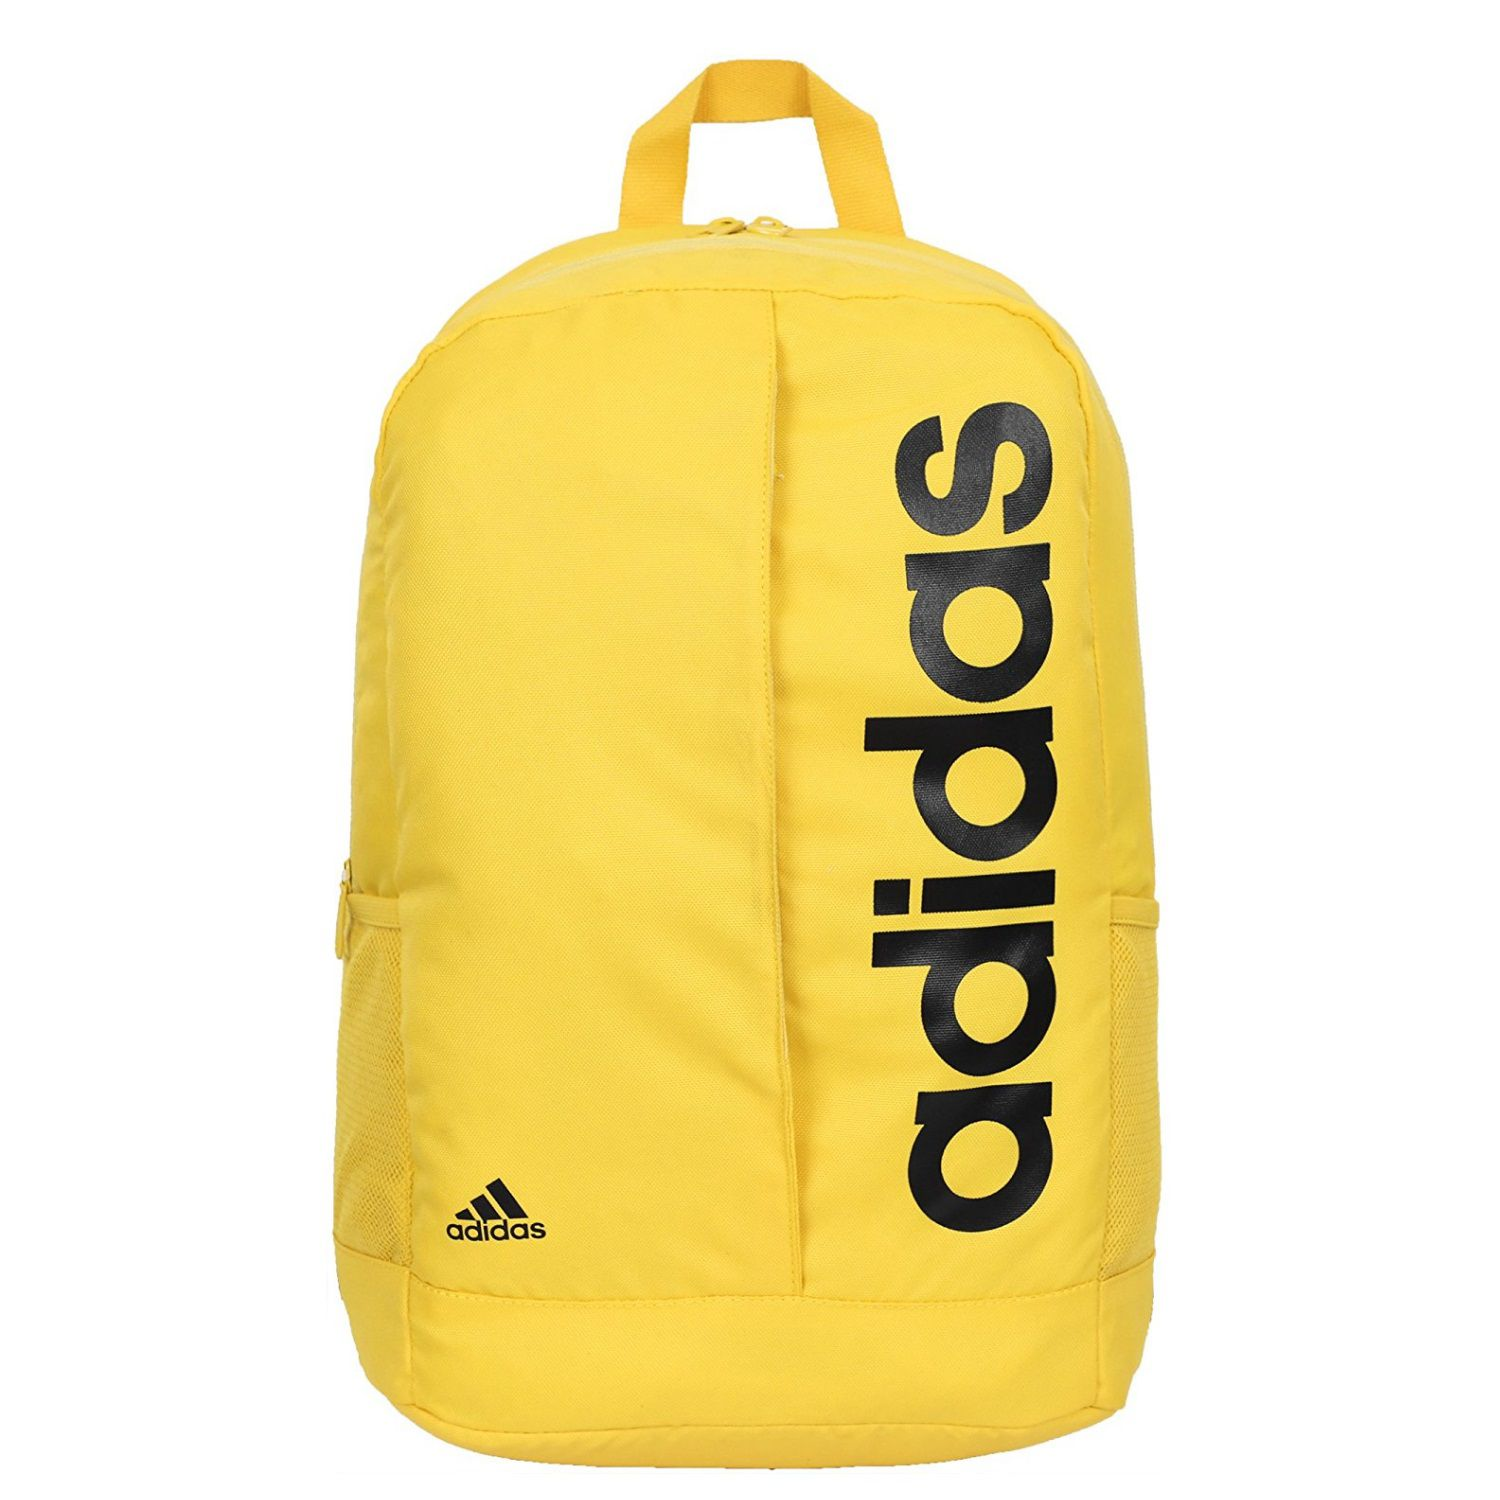 Adidas School Bags Online Up To 45